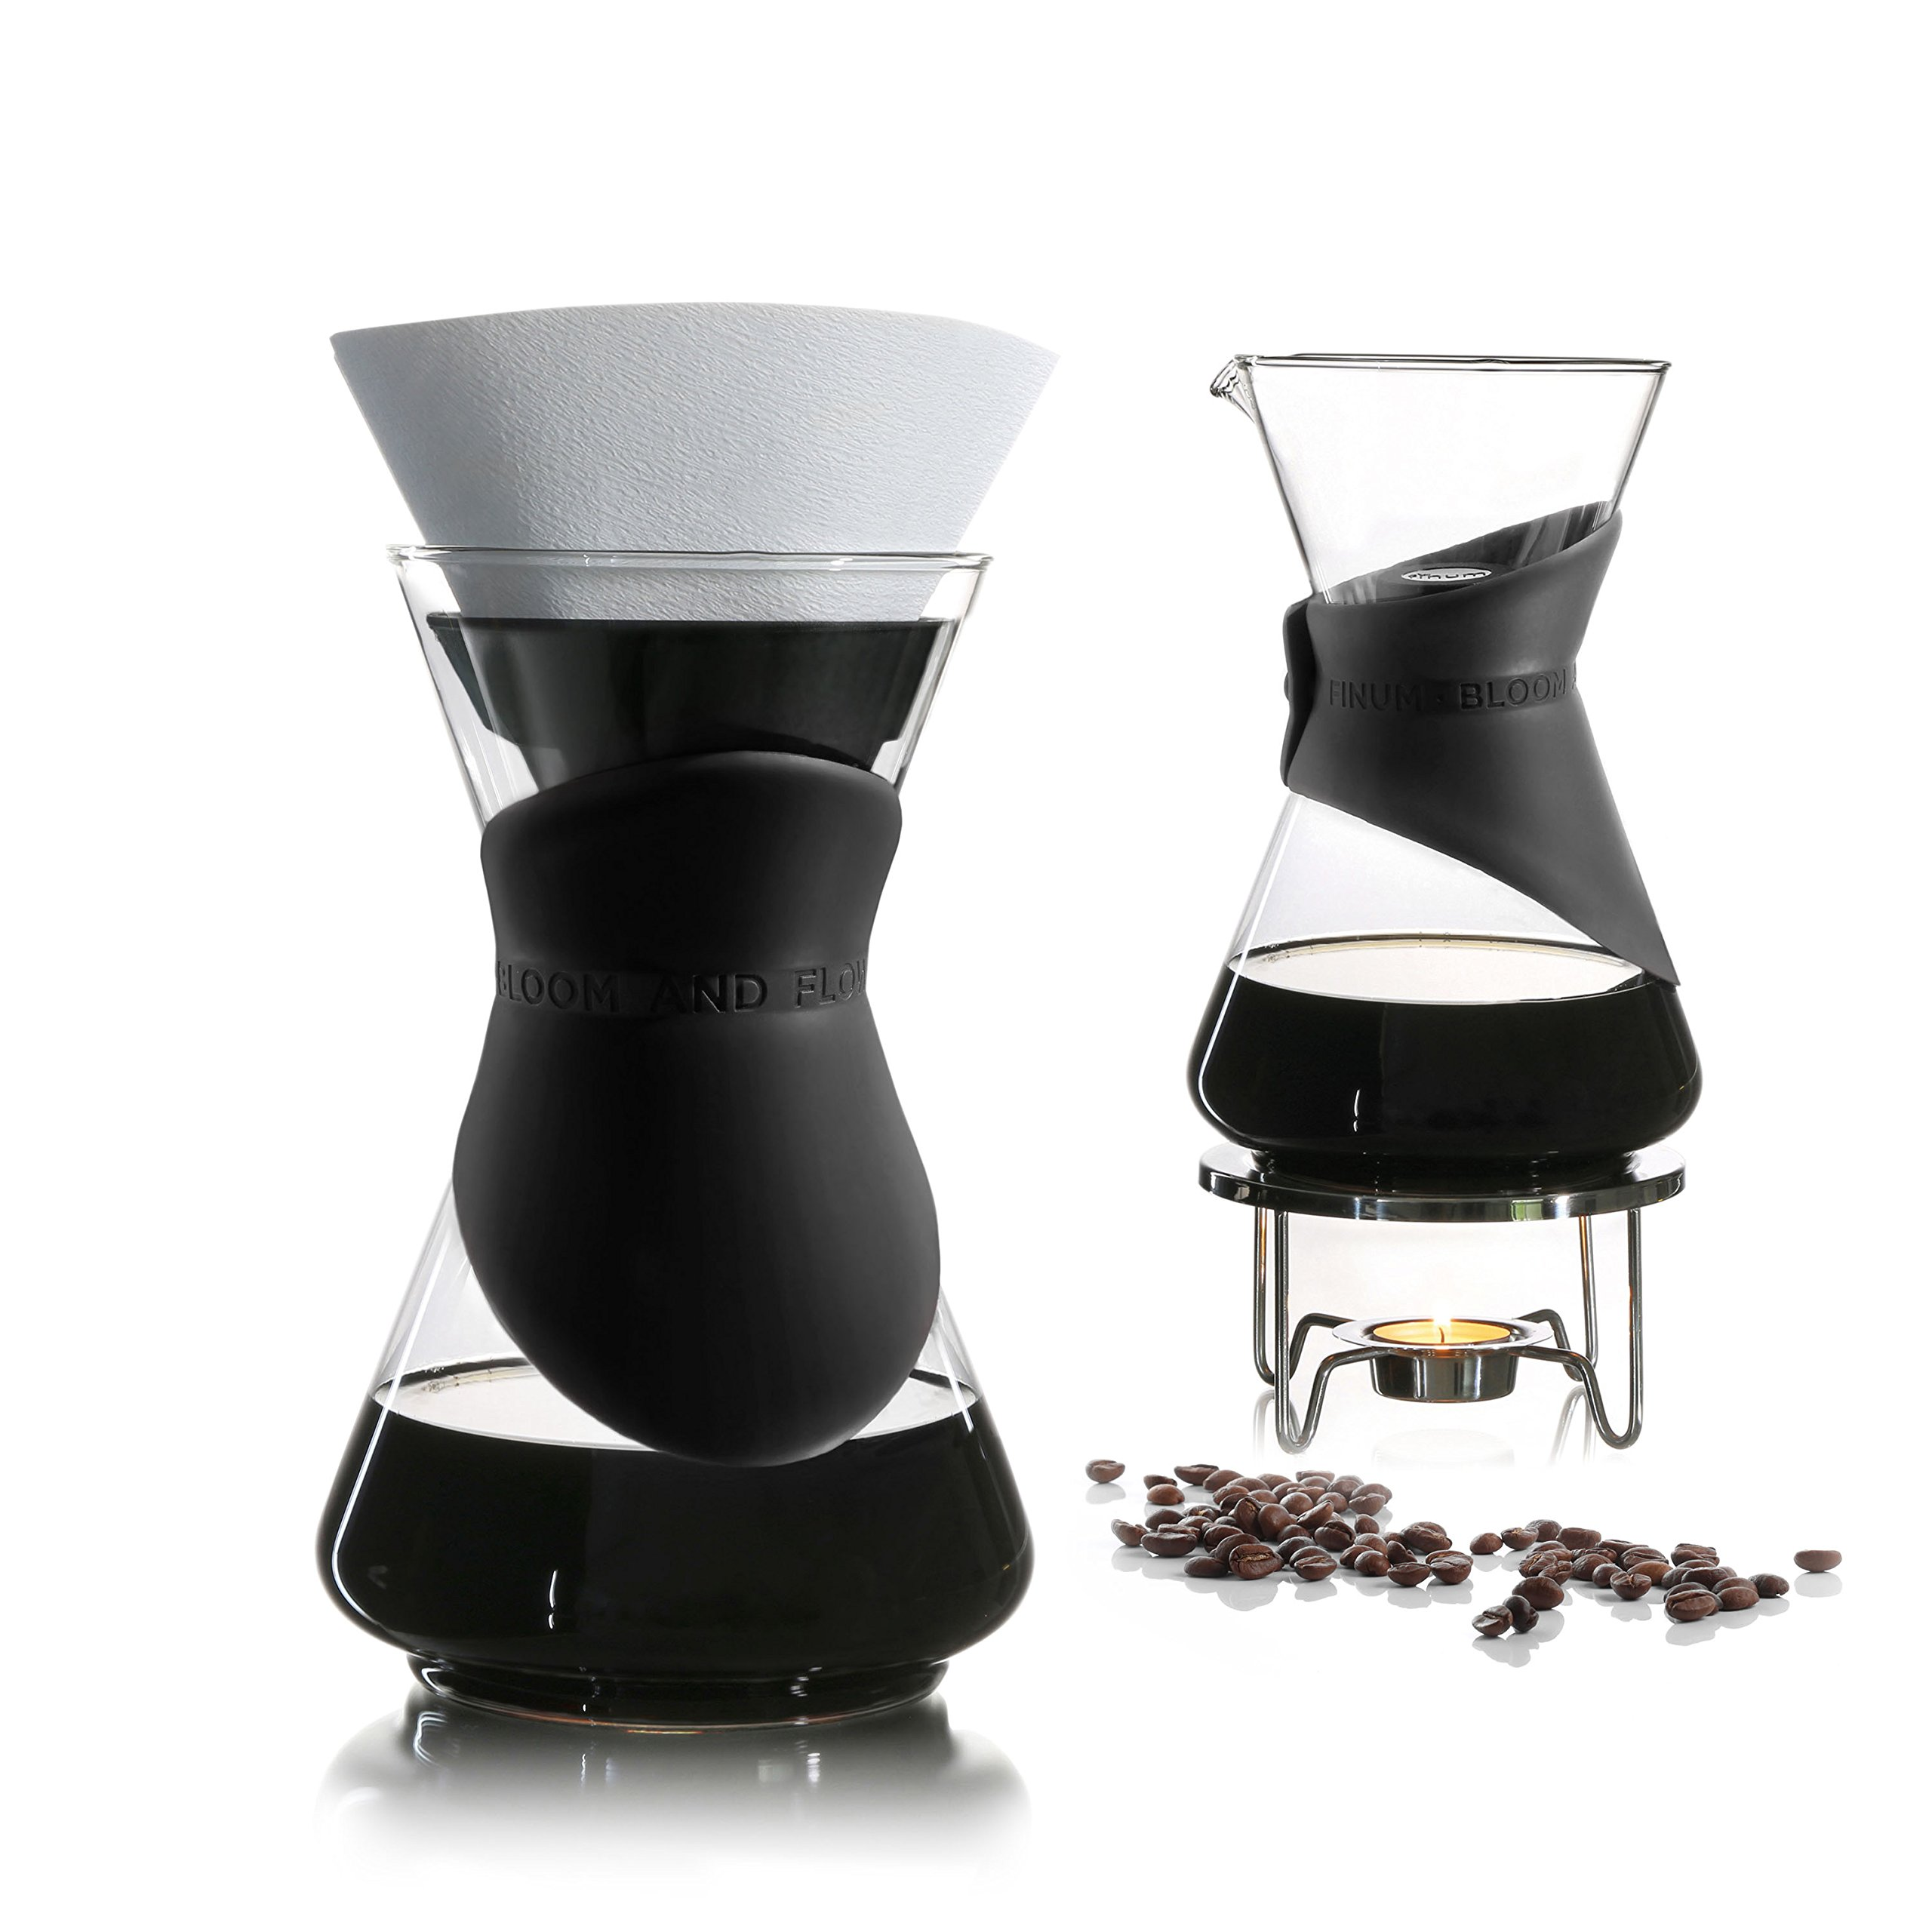 BLOOM AND FLOW- pour over coffee maker (4 Pieces, Black) by Finum